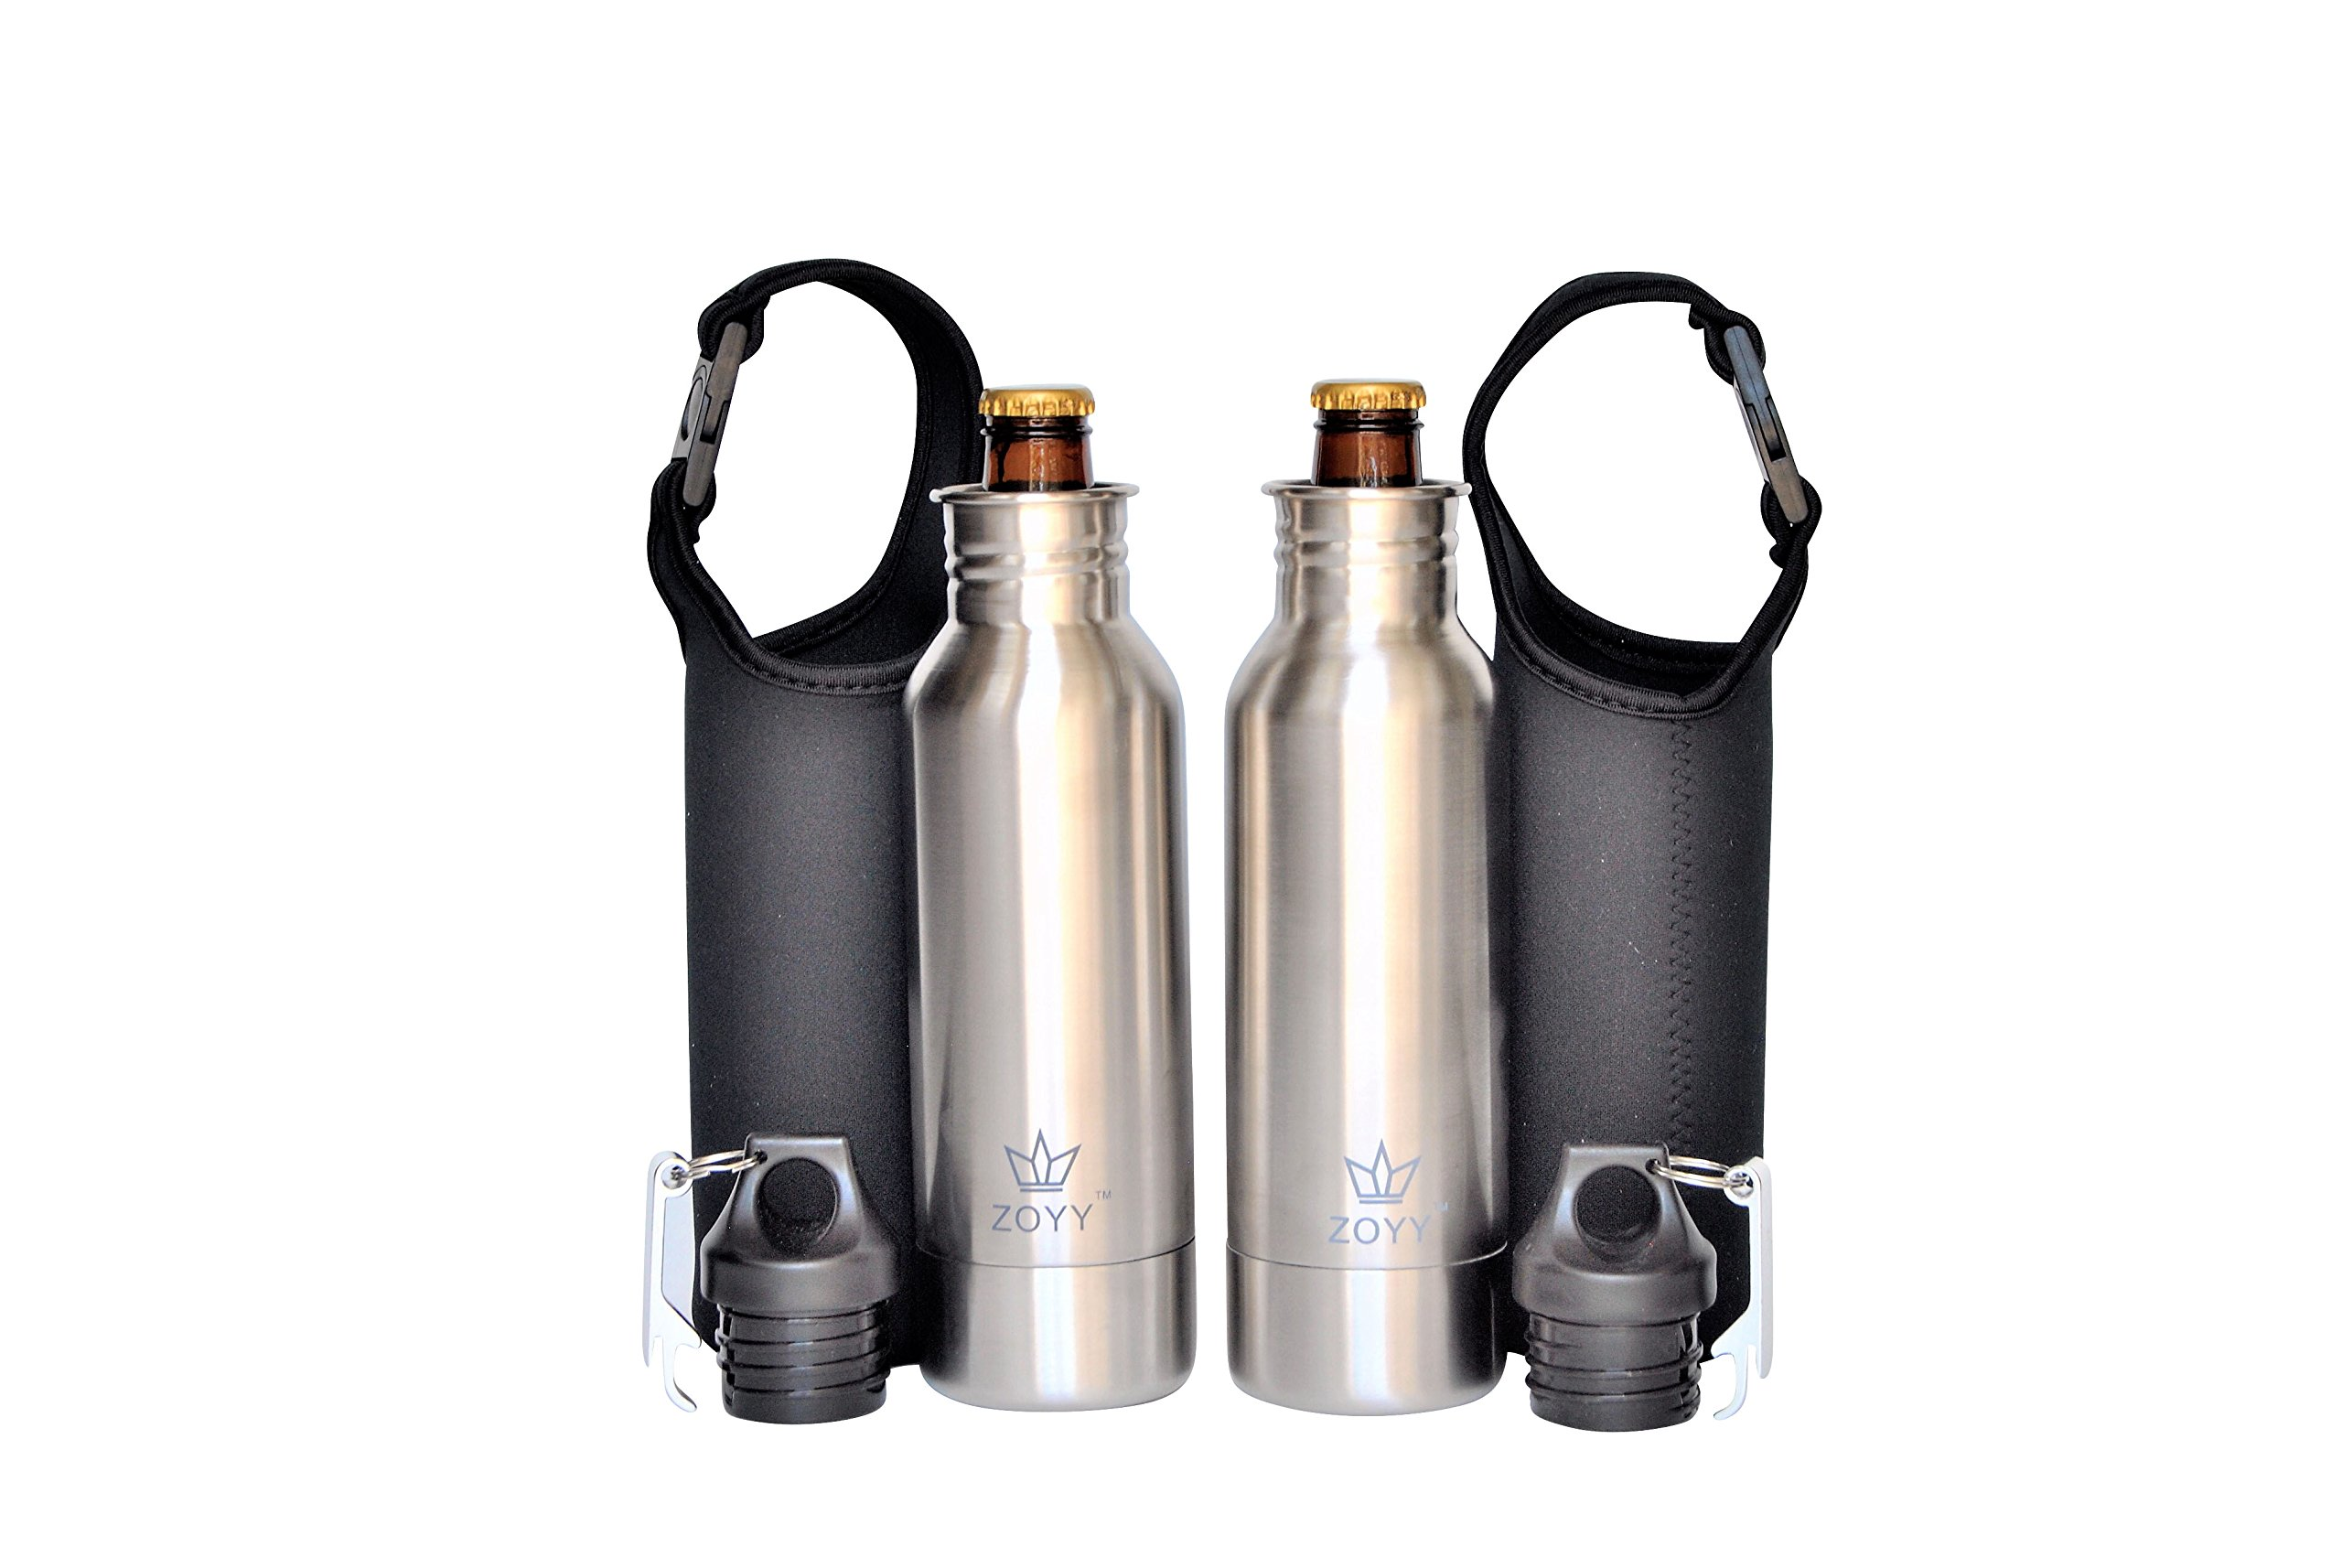 2x Stainless Steel Beer Bottle Holder Insulator With Opener and Carrying Case